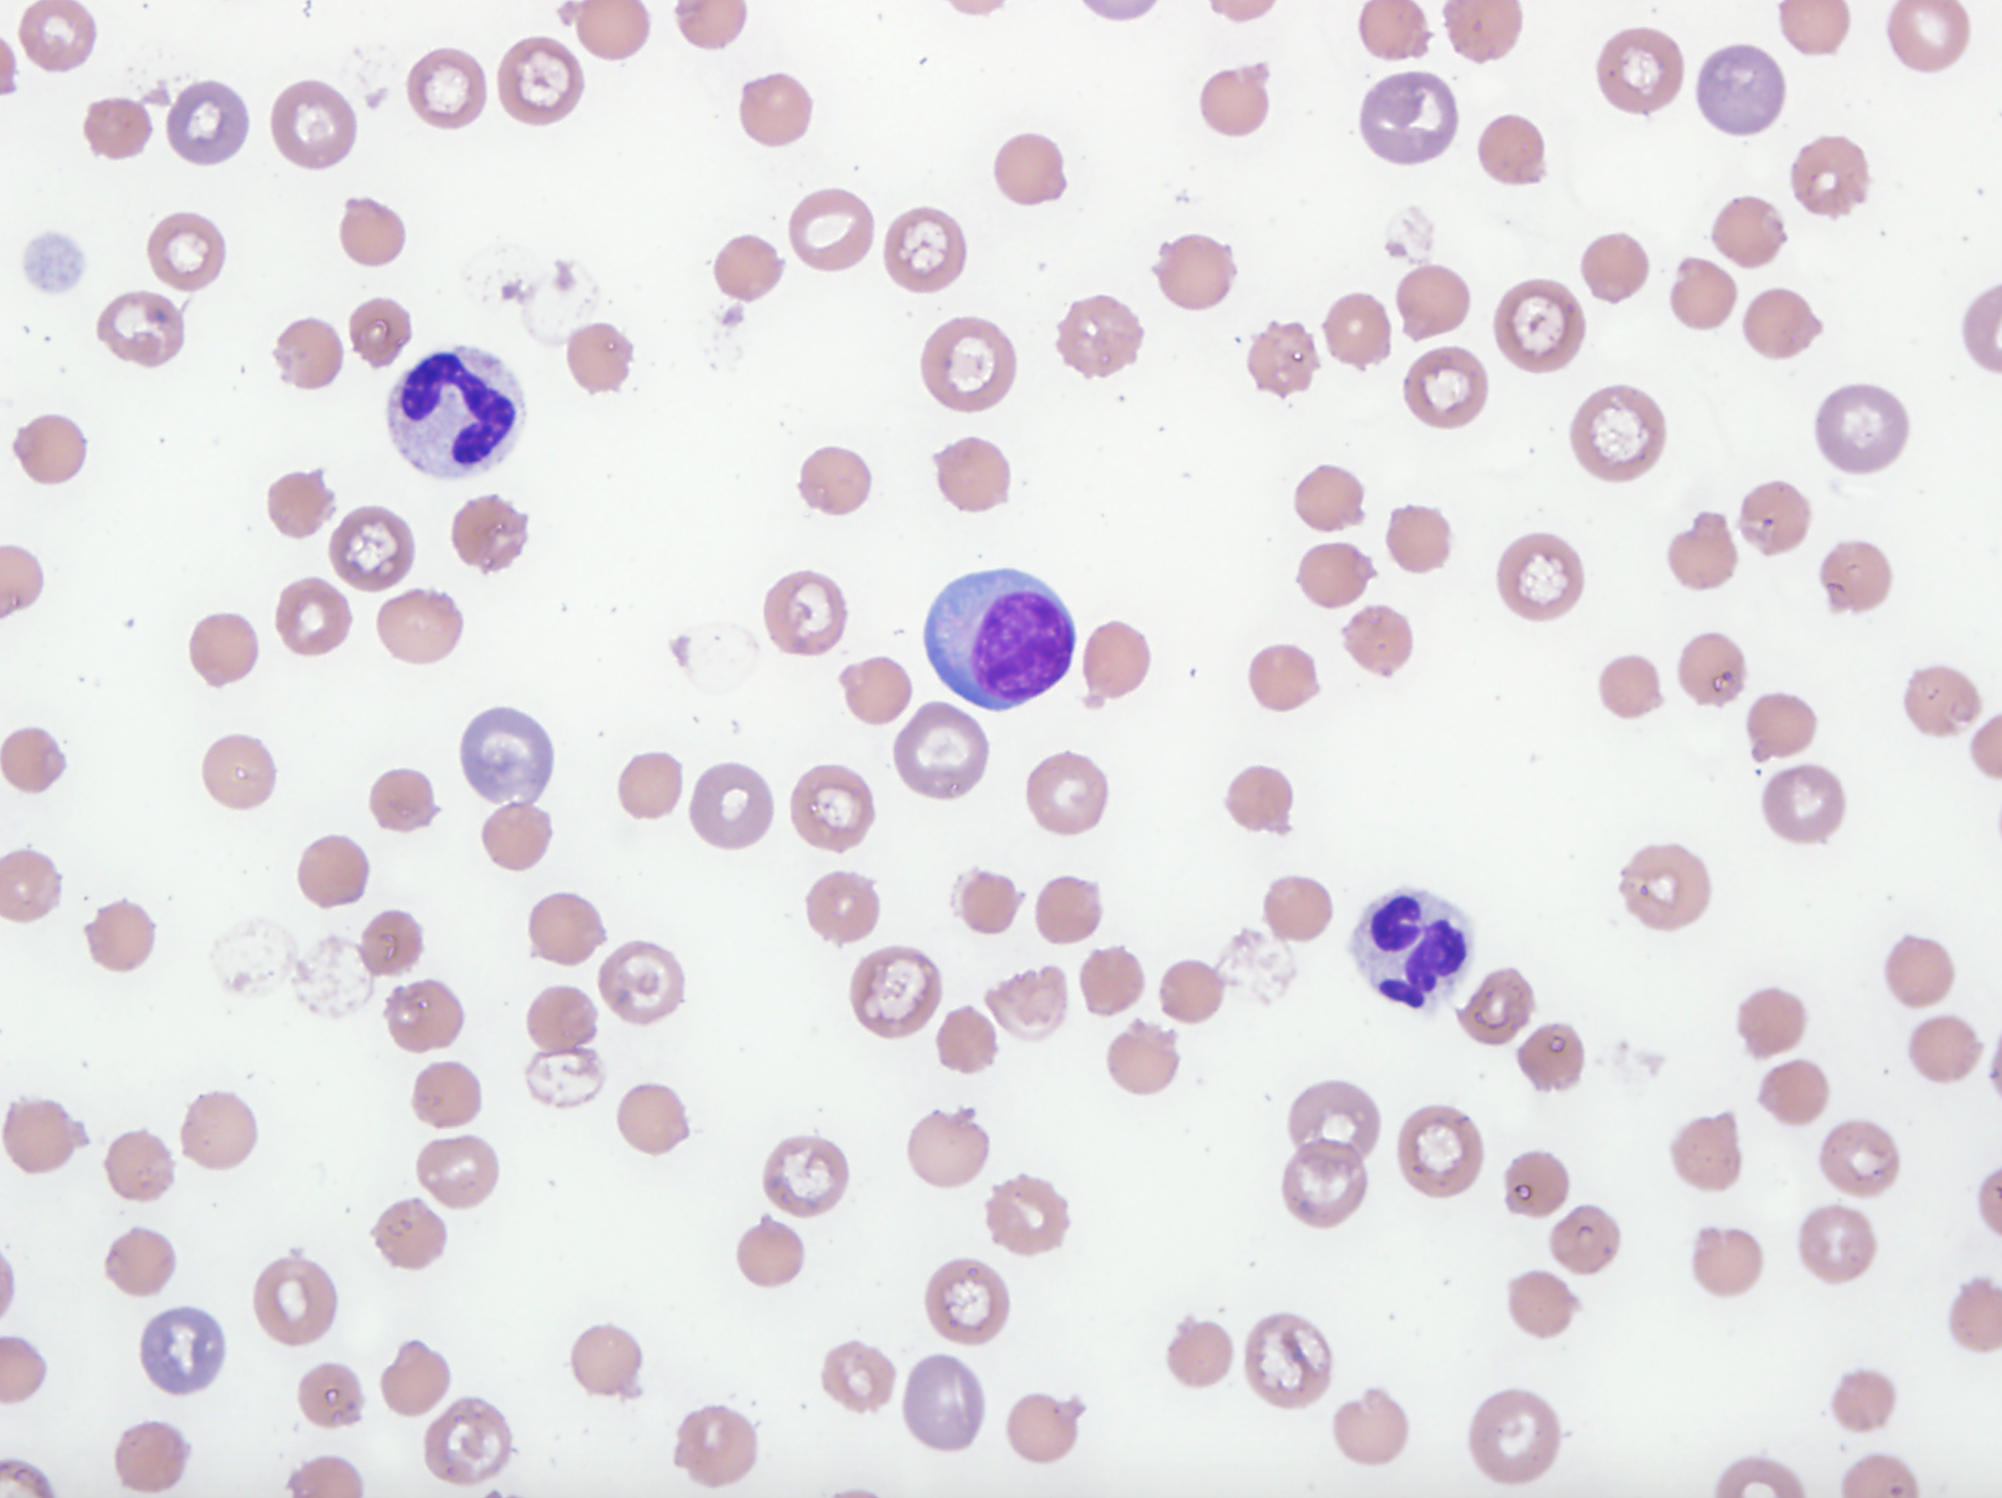 Blood smear showing moderate numbers of Heinz bodies and red blood cell ghosts were seen, indicating Heinz body hemolytic anemia.